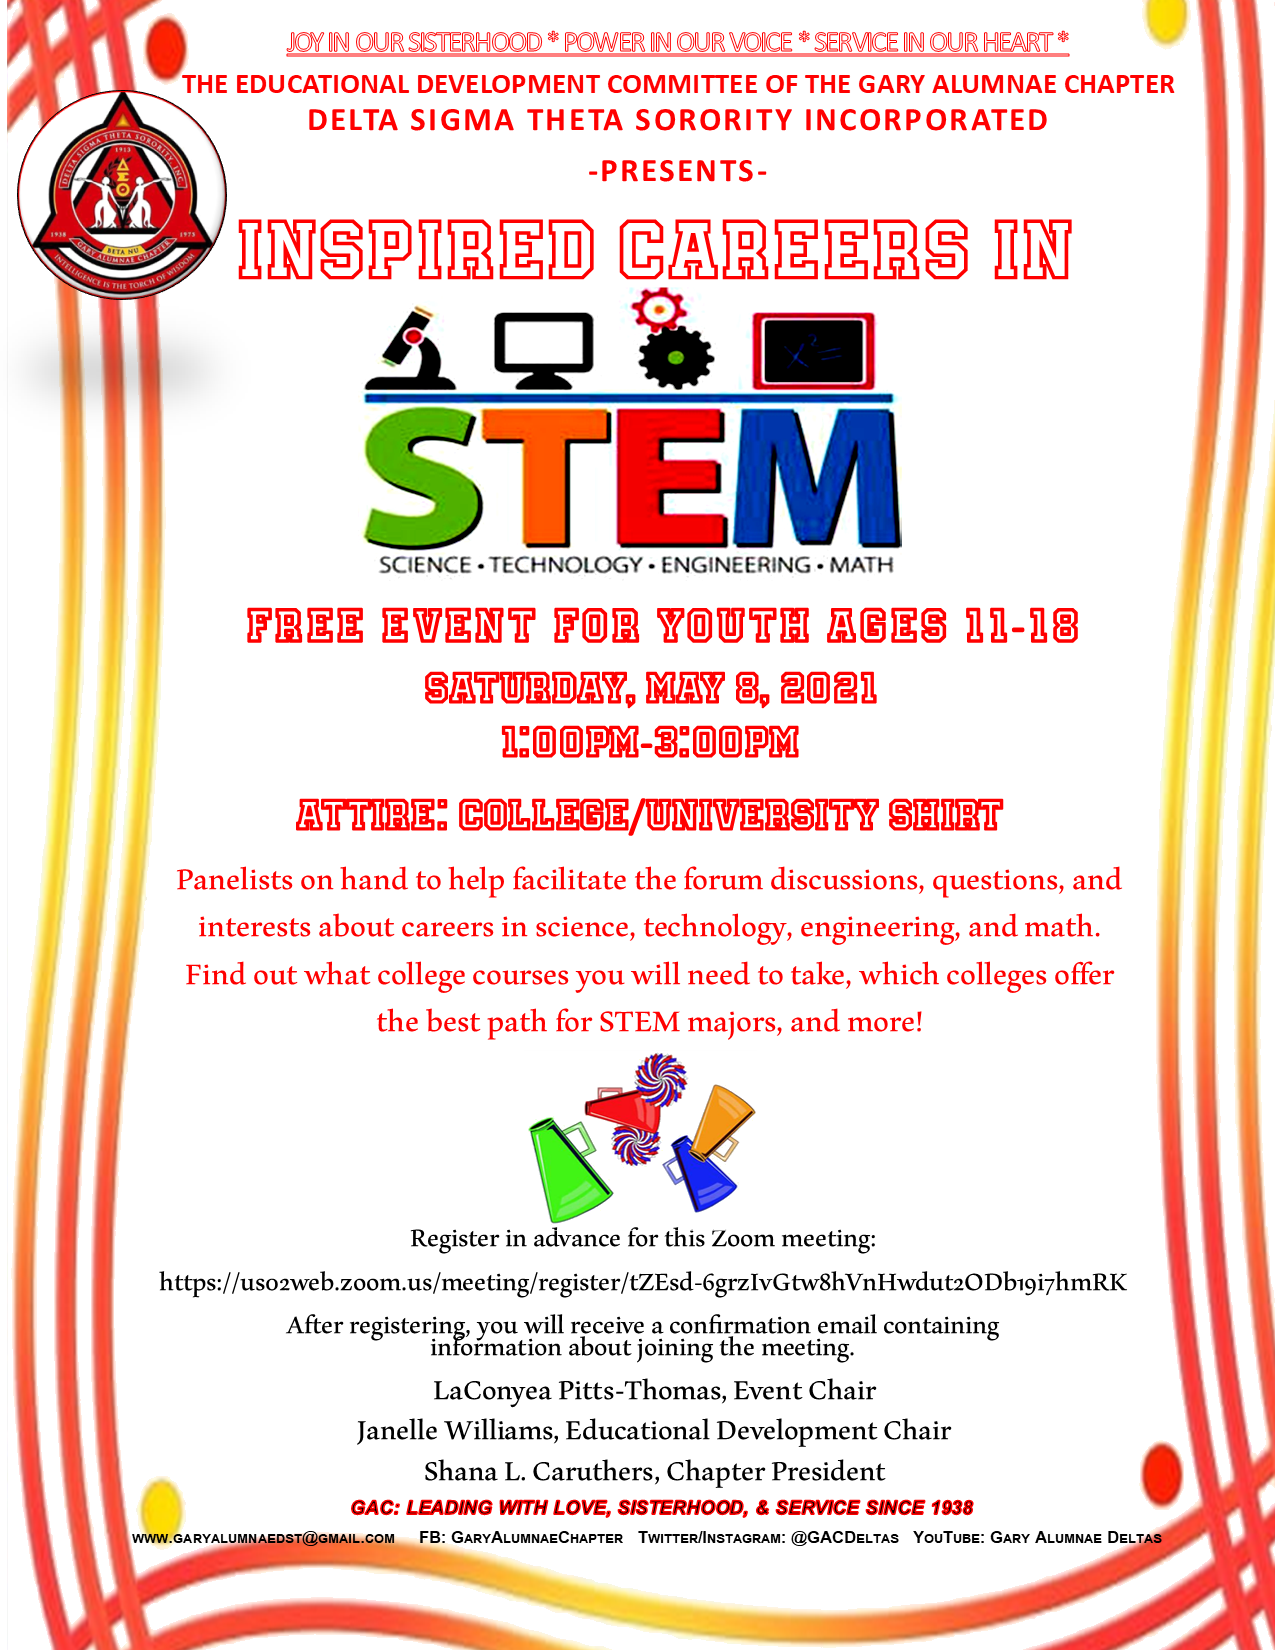 INSPIRED CAREERS IN STEM (CLICK ON THE FLIER)